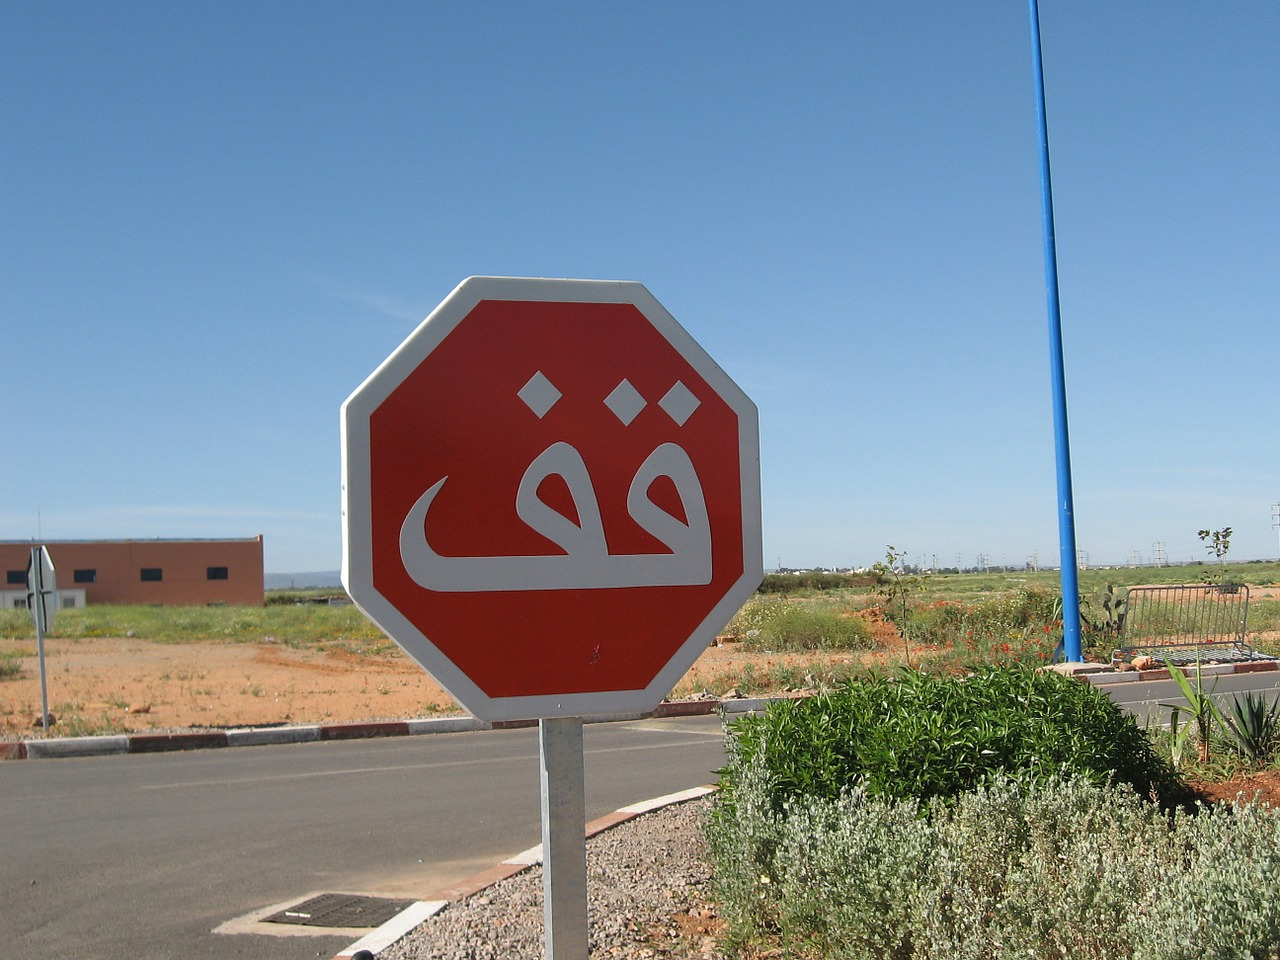 morocco shield street sign free photo